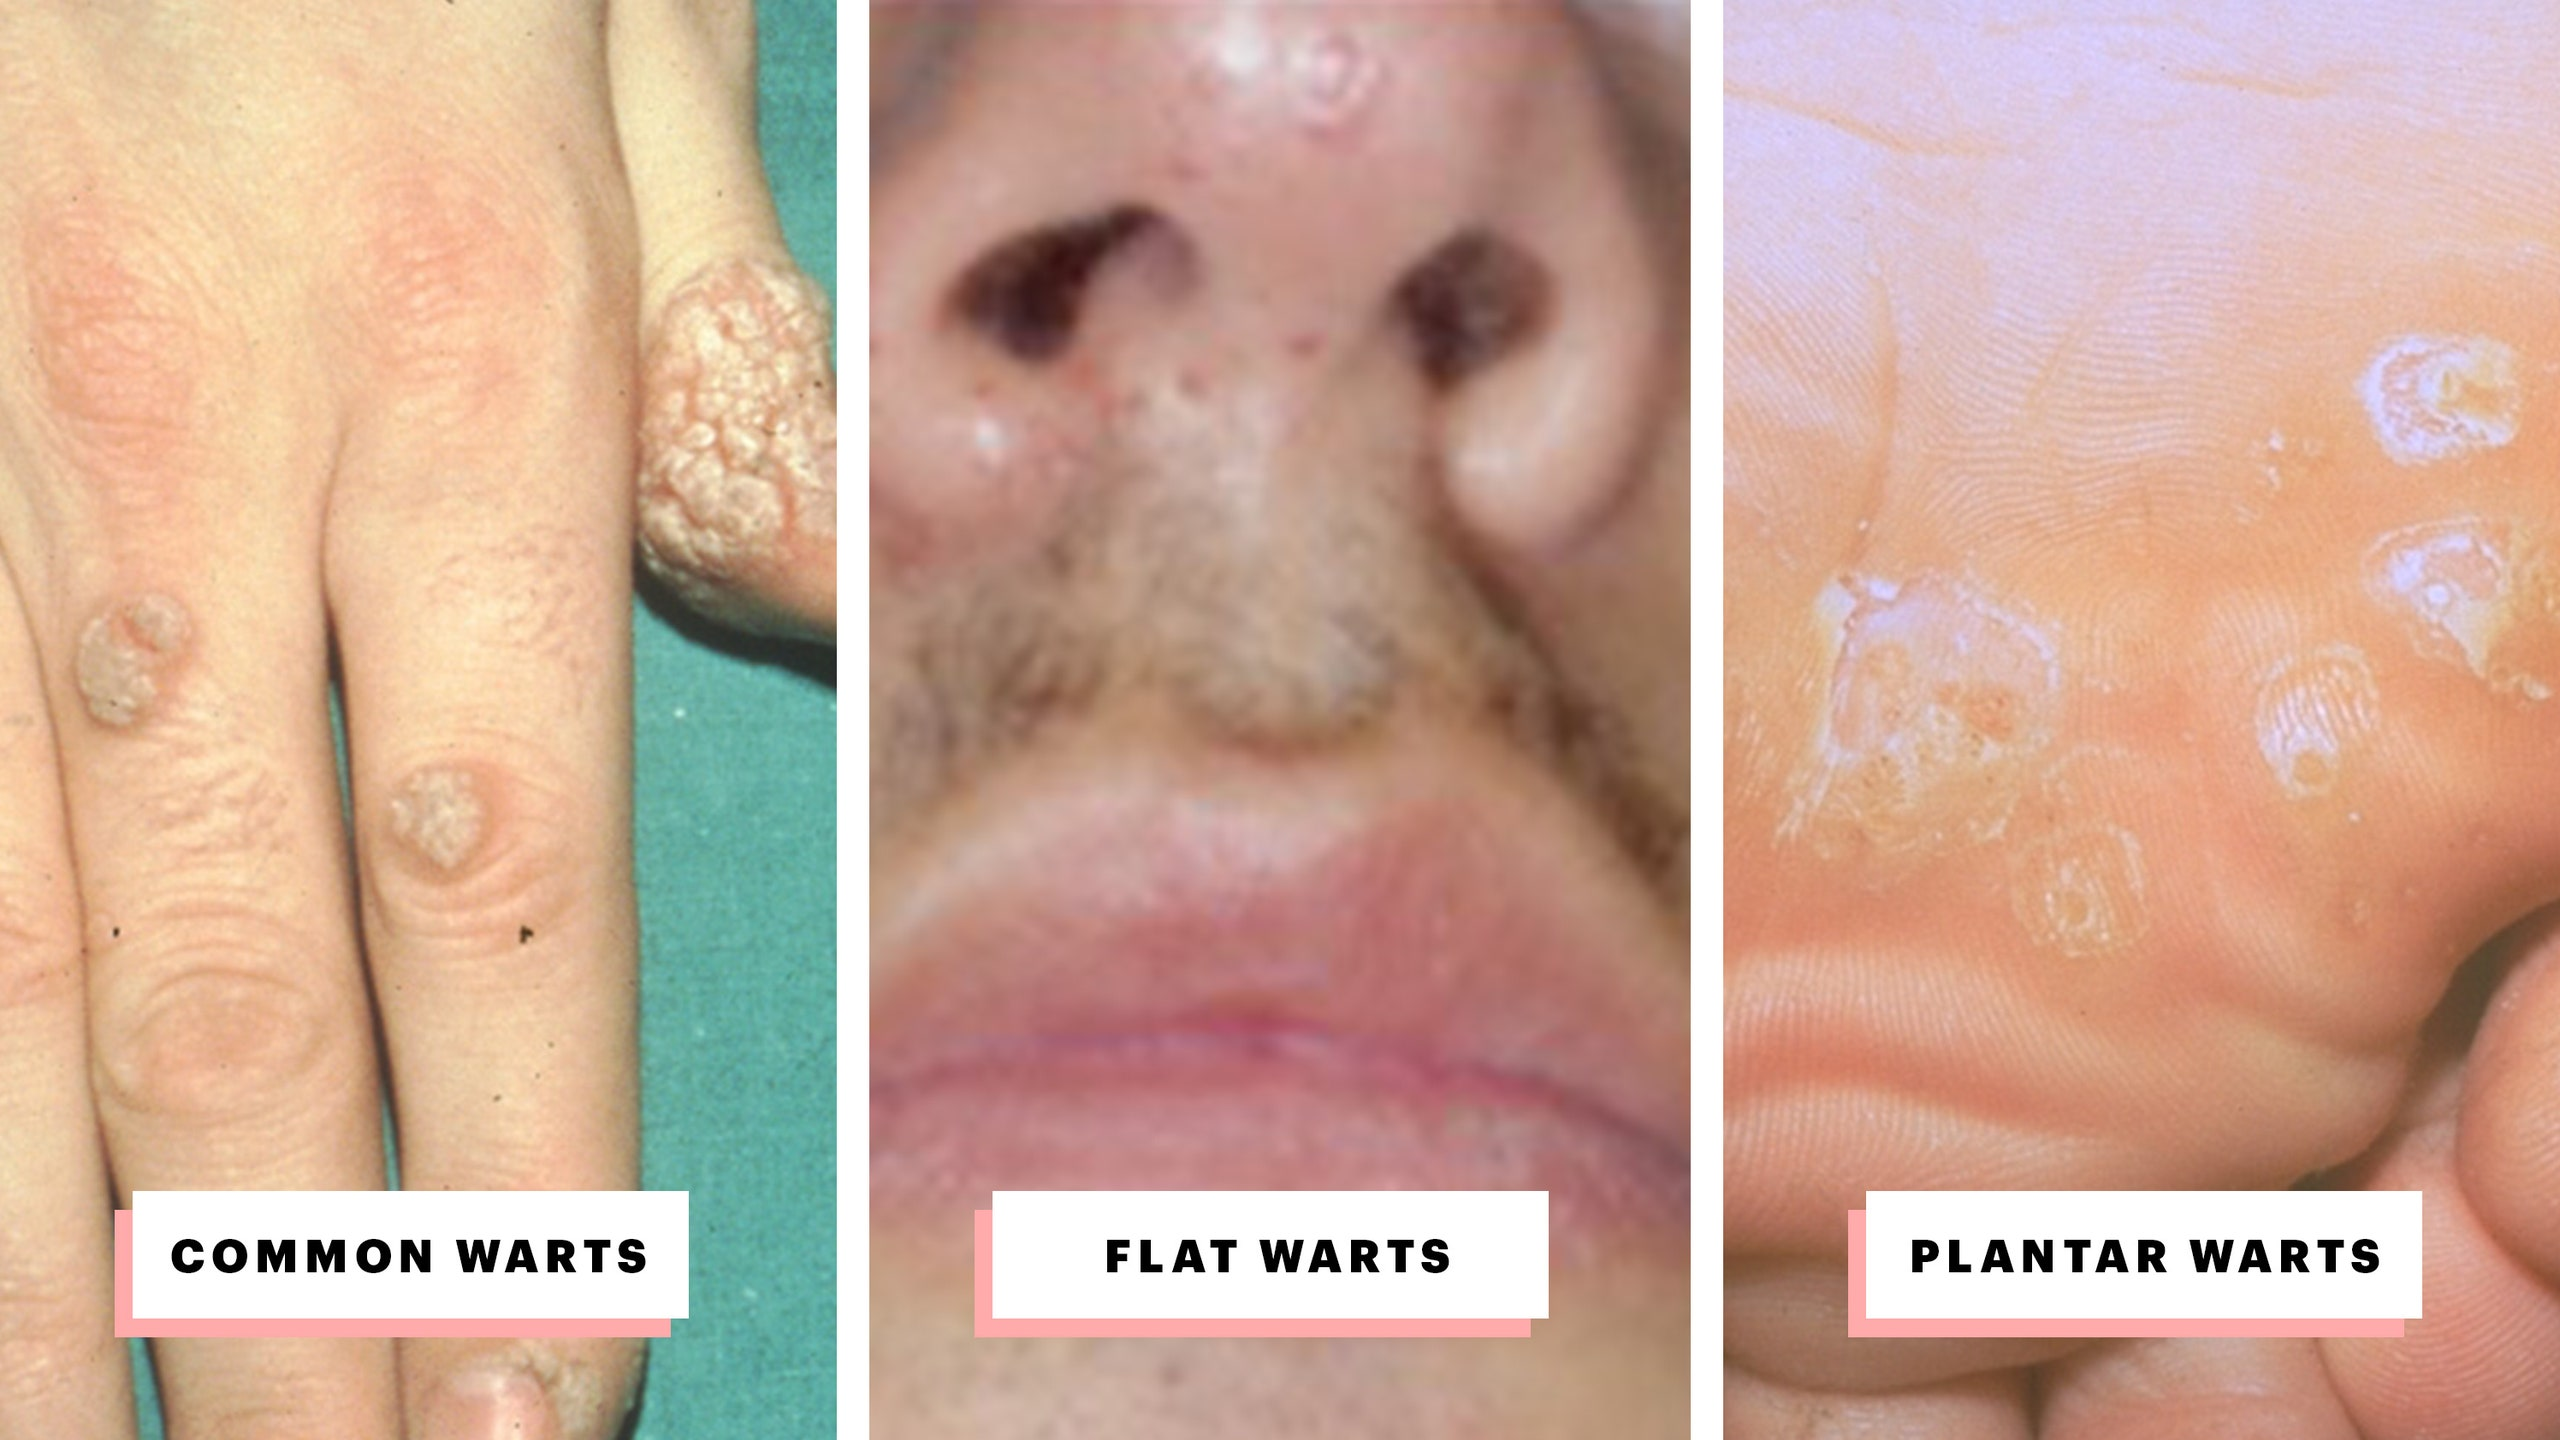 warts on hands and mouth